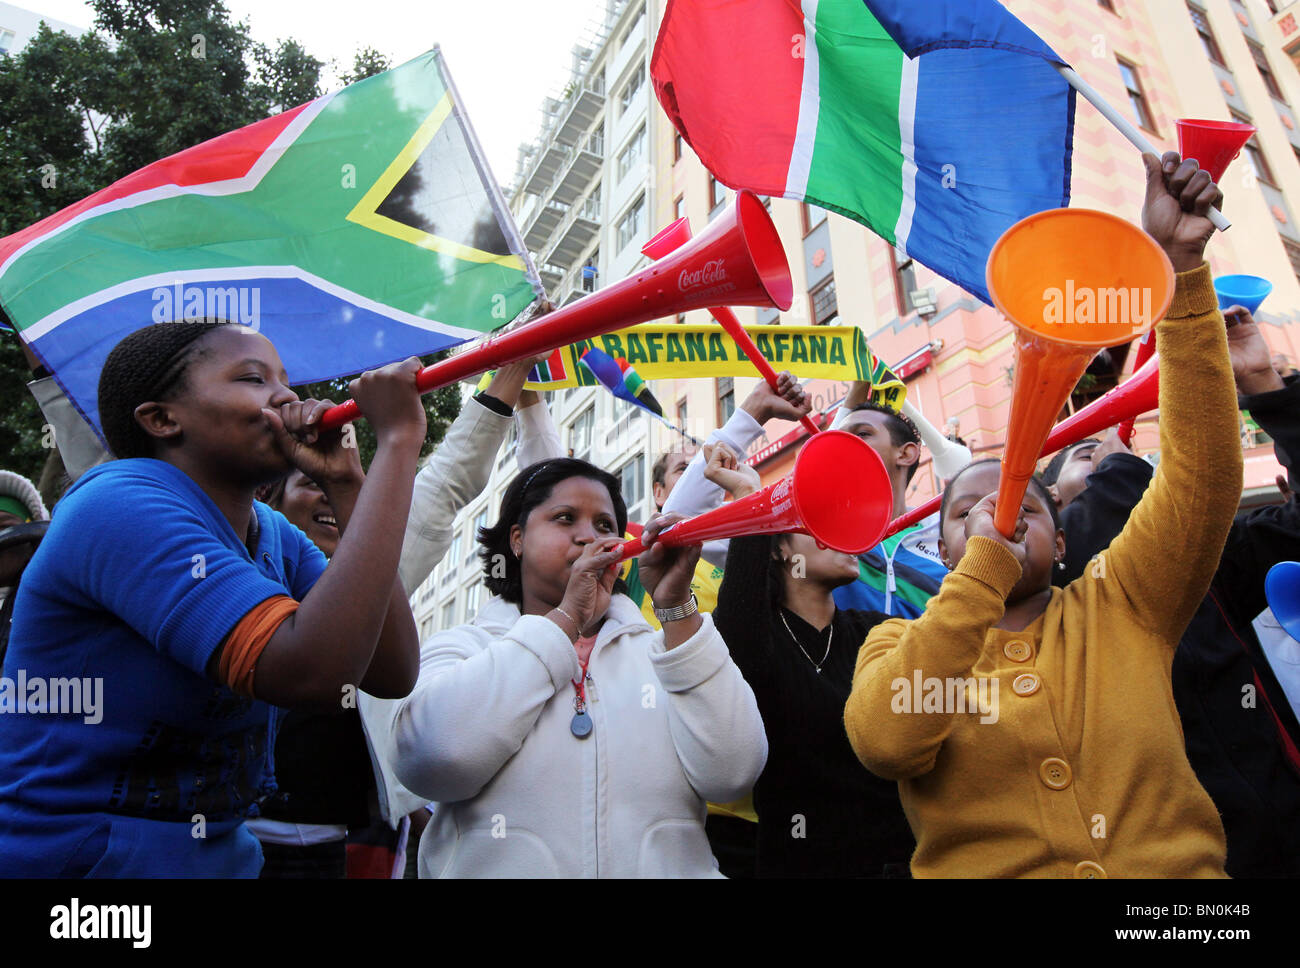 South African soccer fans blow their Vuvuzelas at the Green Market Square in Cape Town - Stock Image